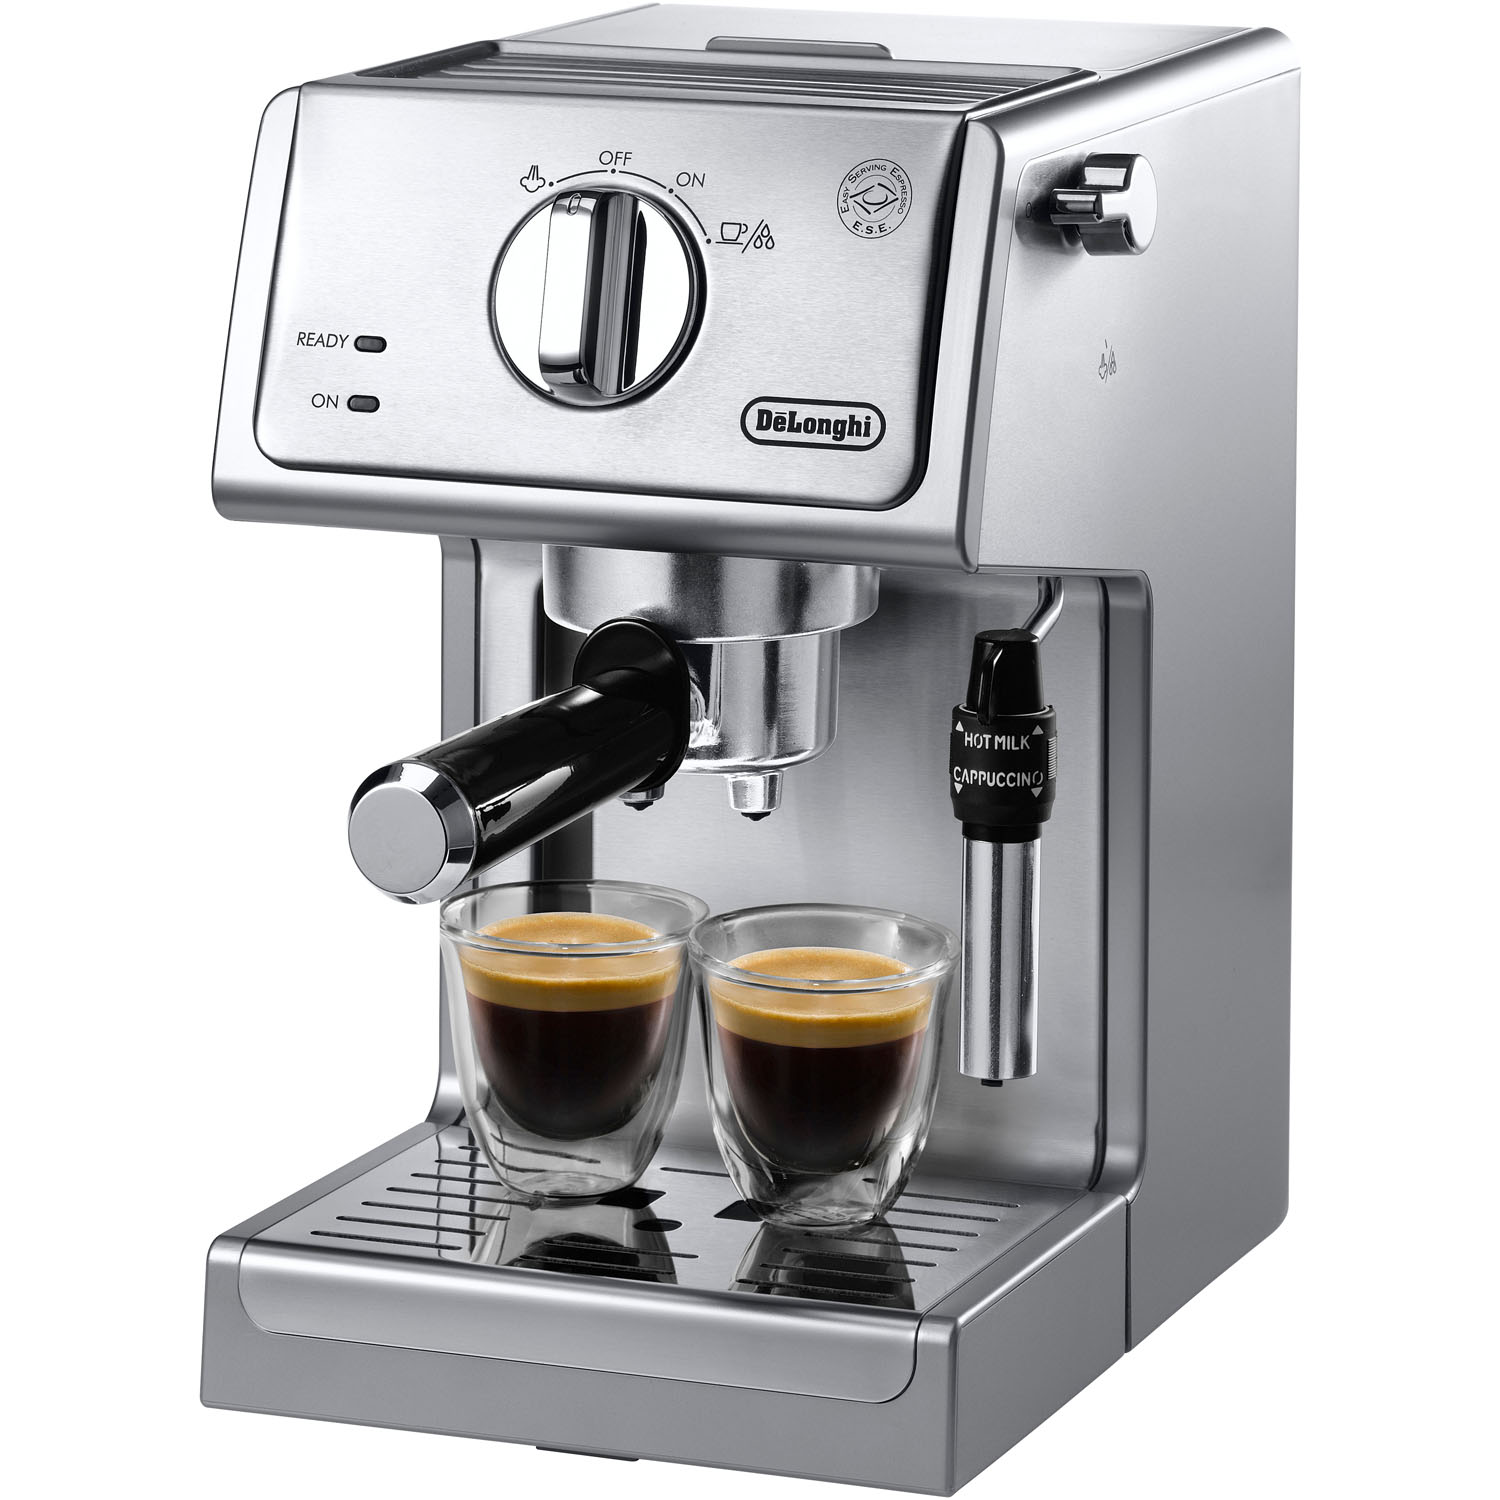 DeLonghi ECP3630 15 Bar Espresso and Cappuccino Machine with Adjustable Advanced Cappuccino System